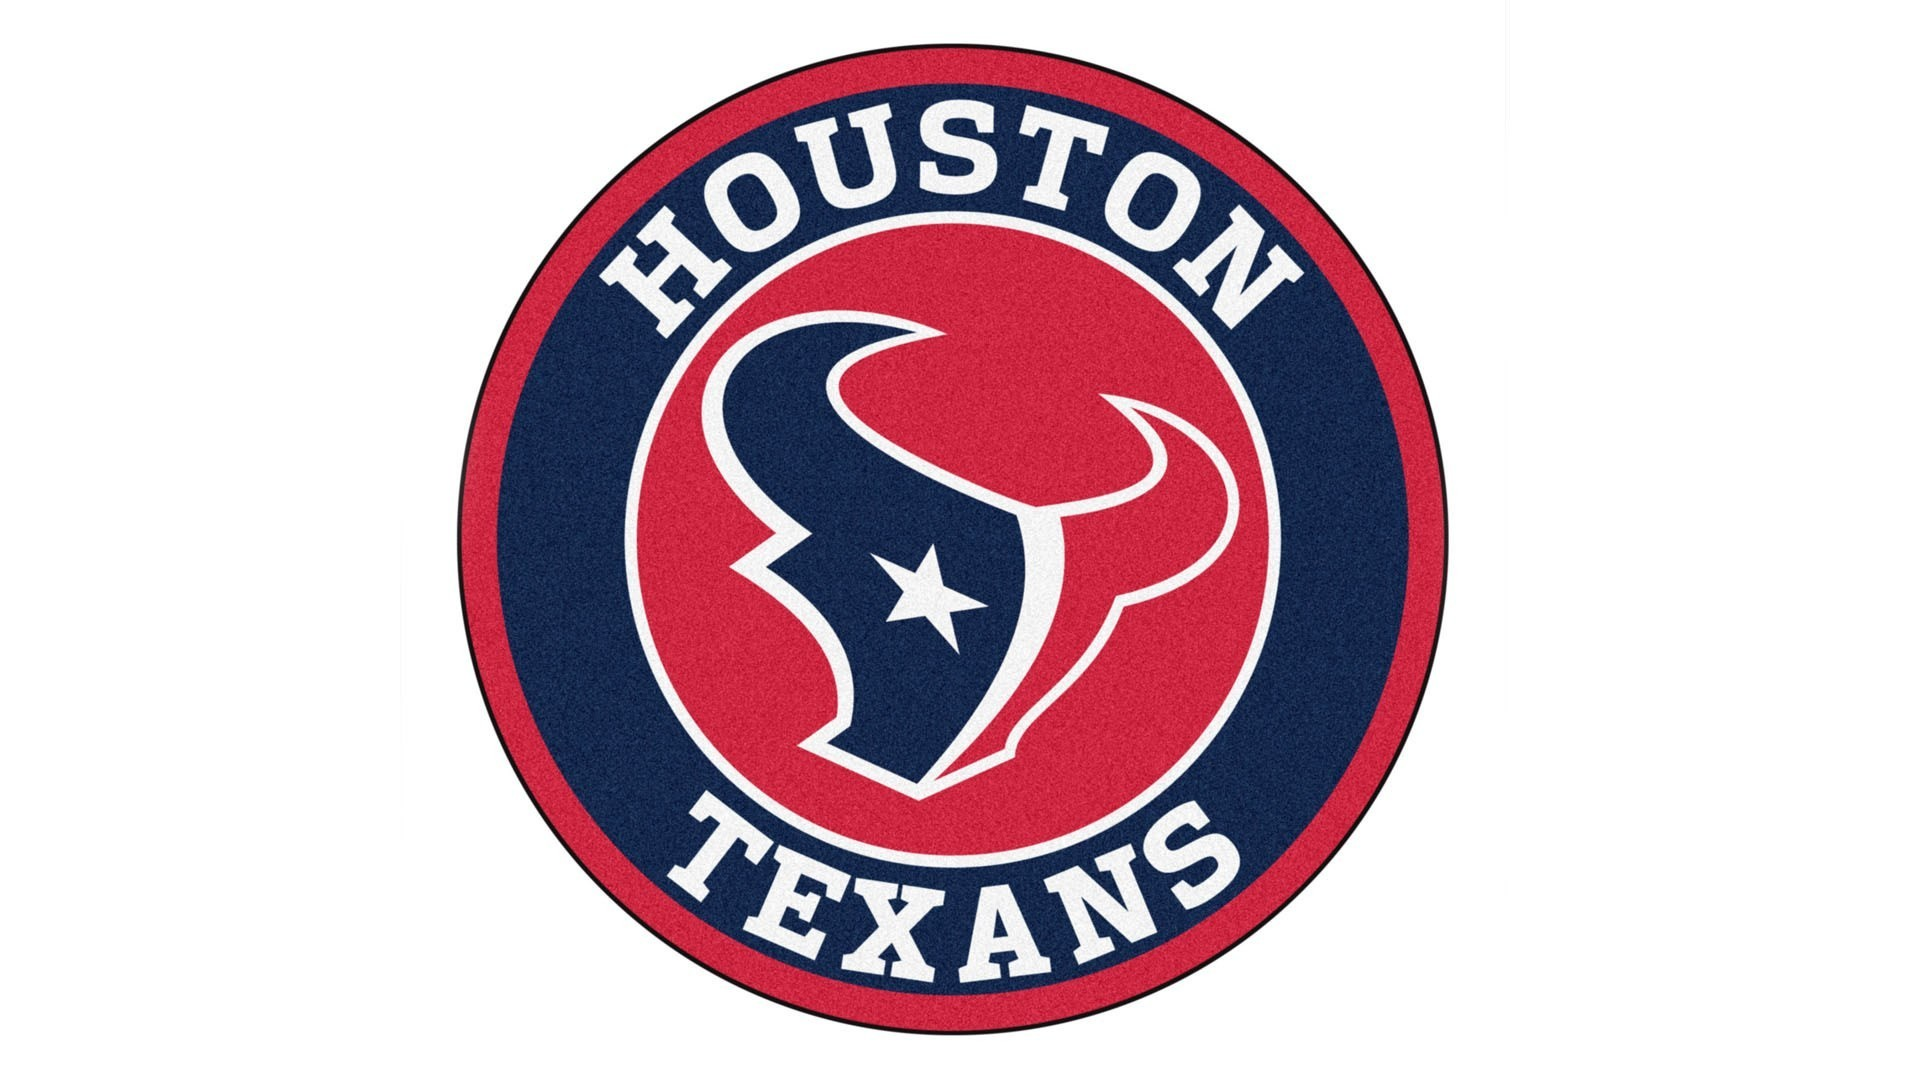 1920x1080 HD Backgrounds Houston Texans NFL with resolution  pixel. You can  make this wallpaper for